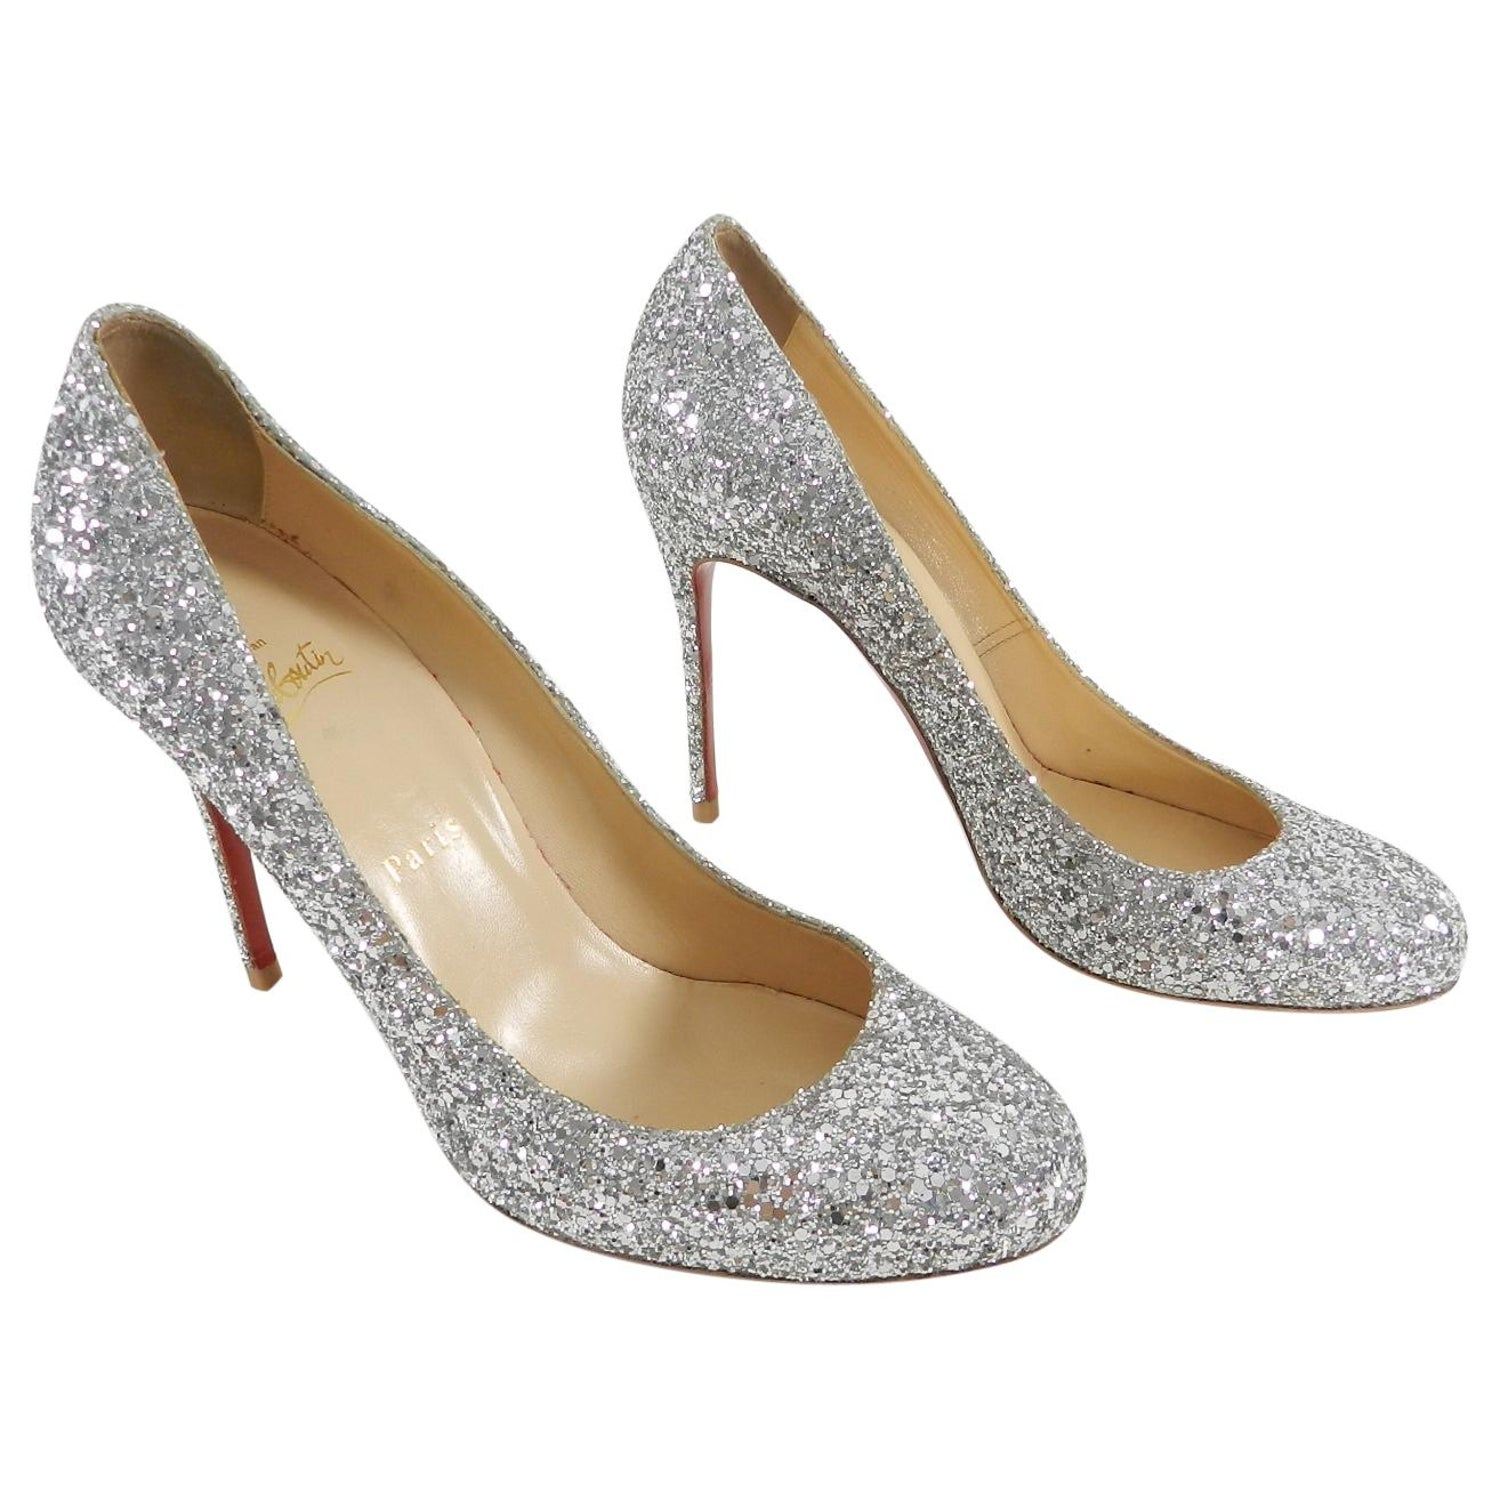 0a2869c35a7 Christian Louboutin Silver Sparkle Glitter Fifille 110 Pumps Heels at  1stdibs